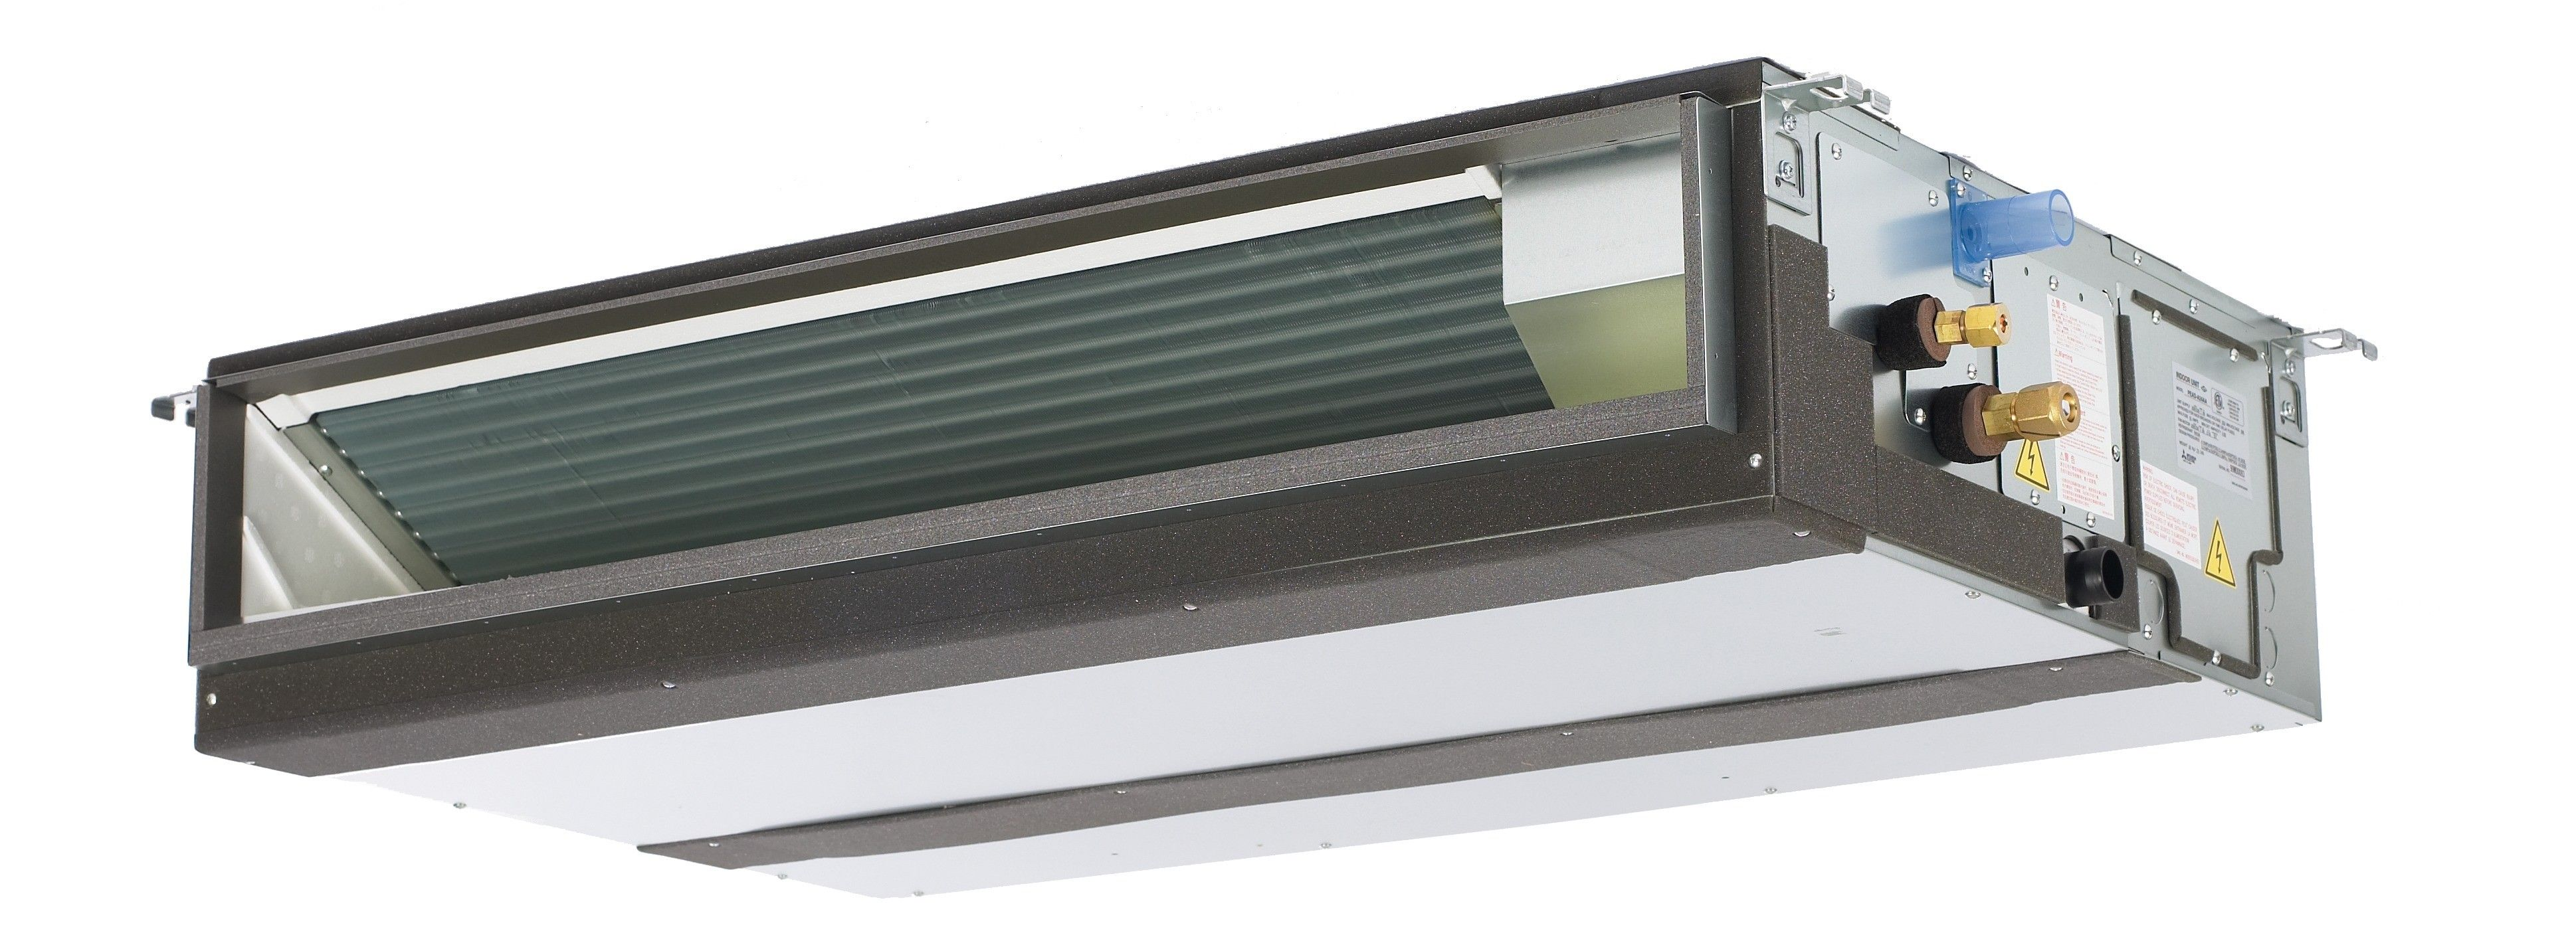 30k Btu Mitsubishi Pead Horizontal Ducted Indoor Unit